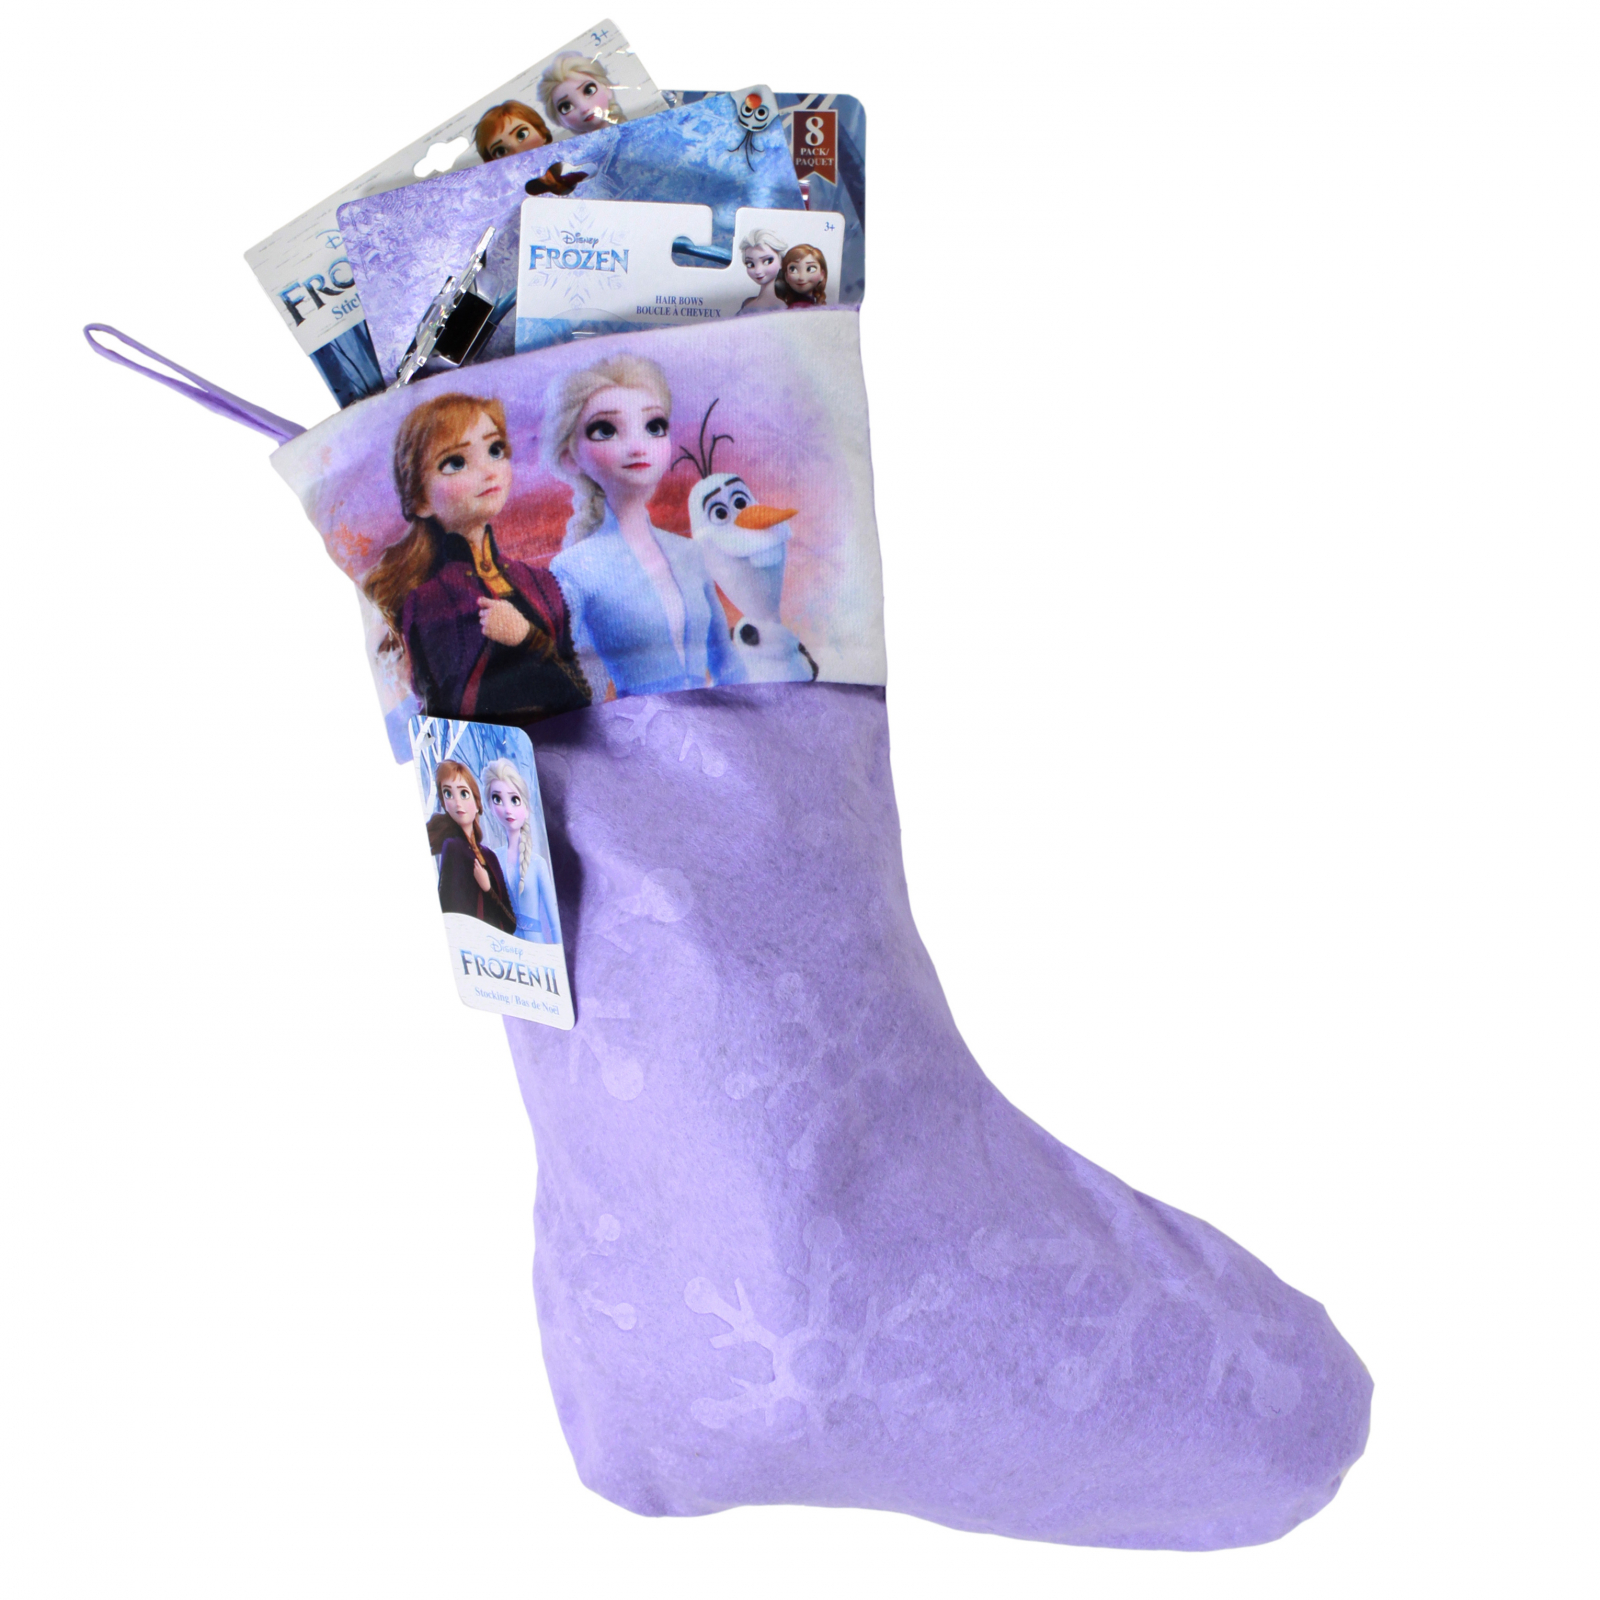 Frozen 2 Kids Christmas Stocking Filled with Toys 14 Pieces